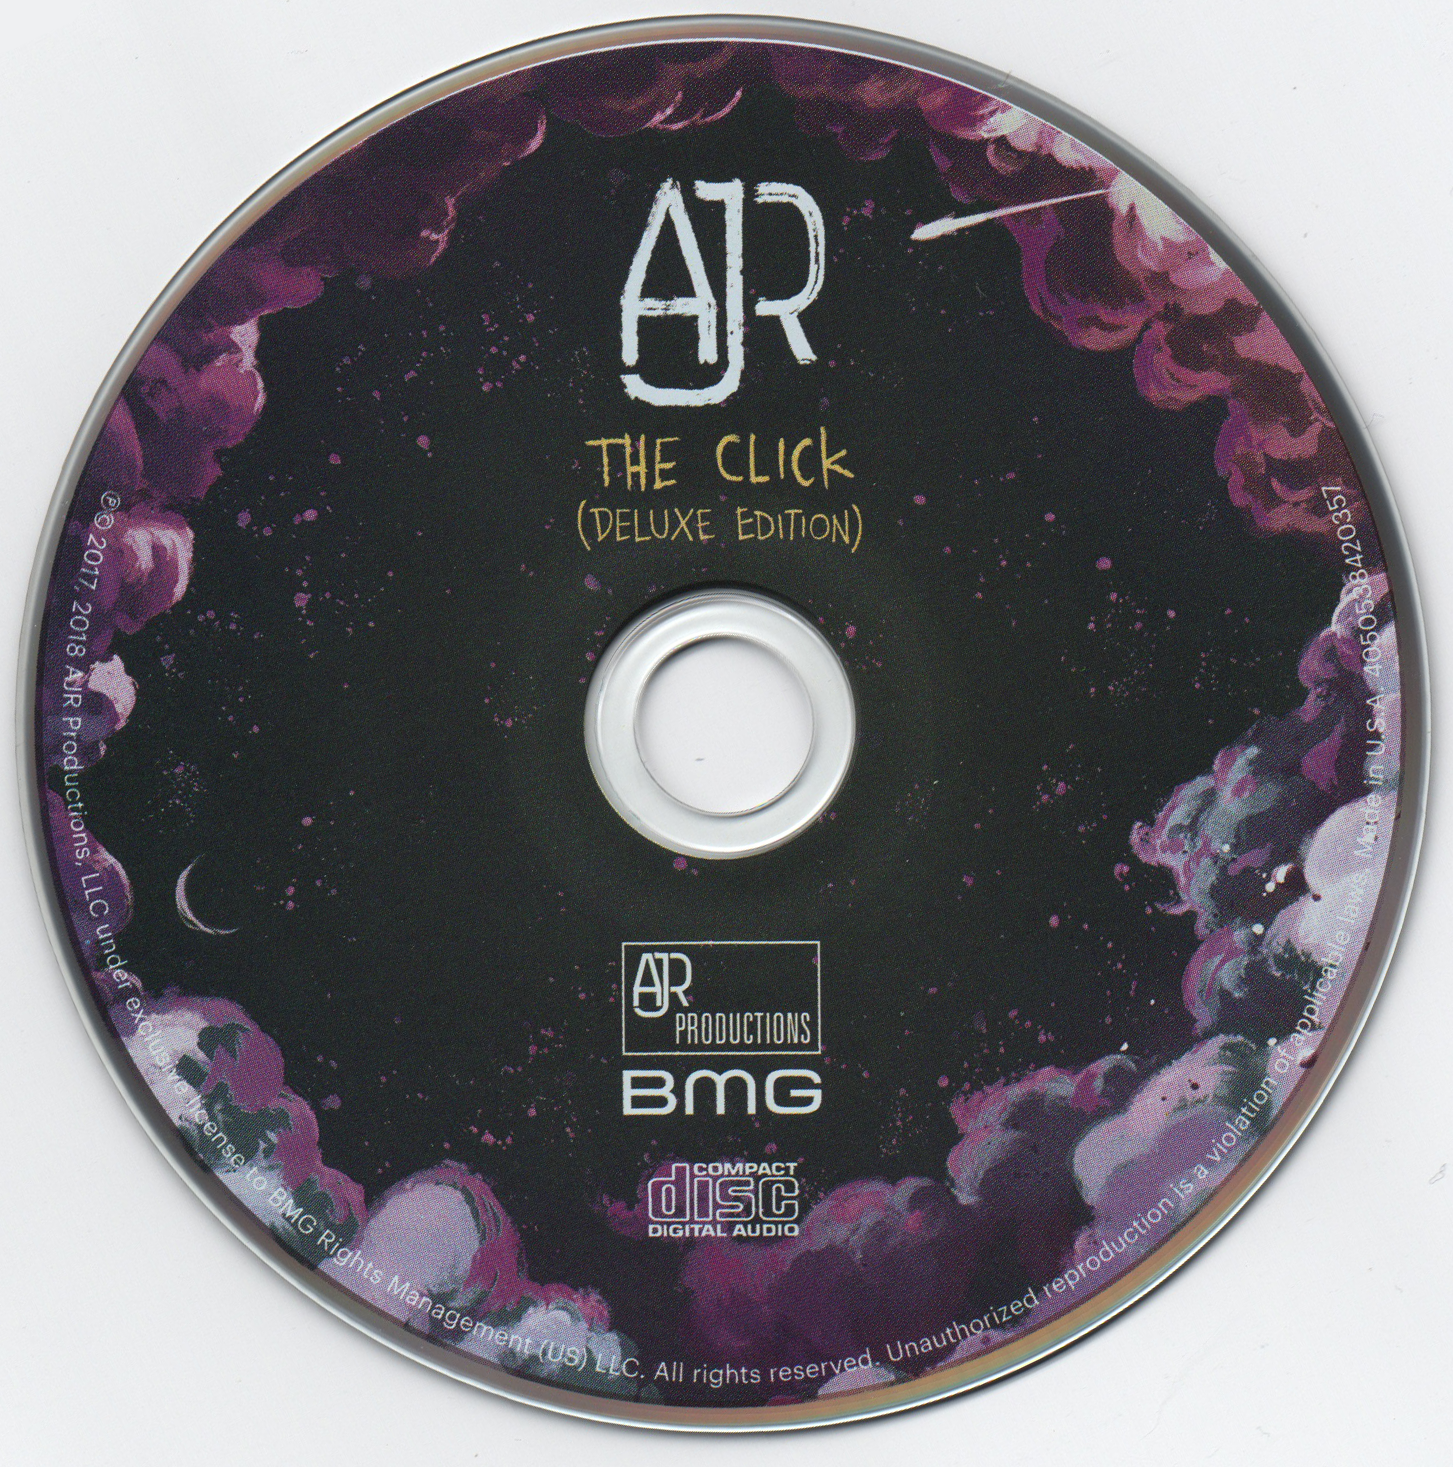 Index of /rand-pics/Scans/AJR/The Click (Deluxe Edition)/UNCOMPRESSED/